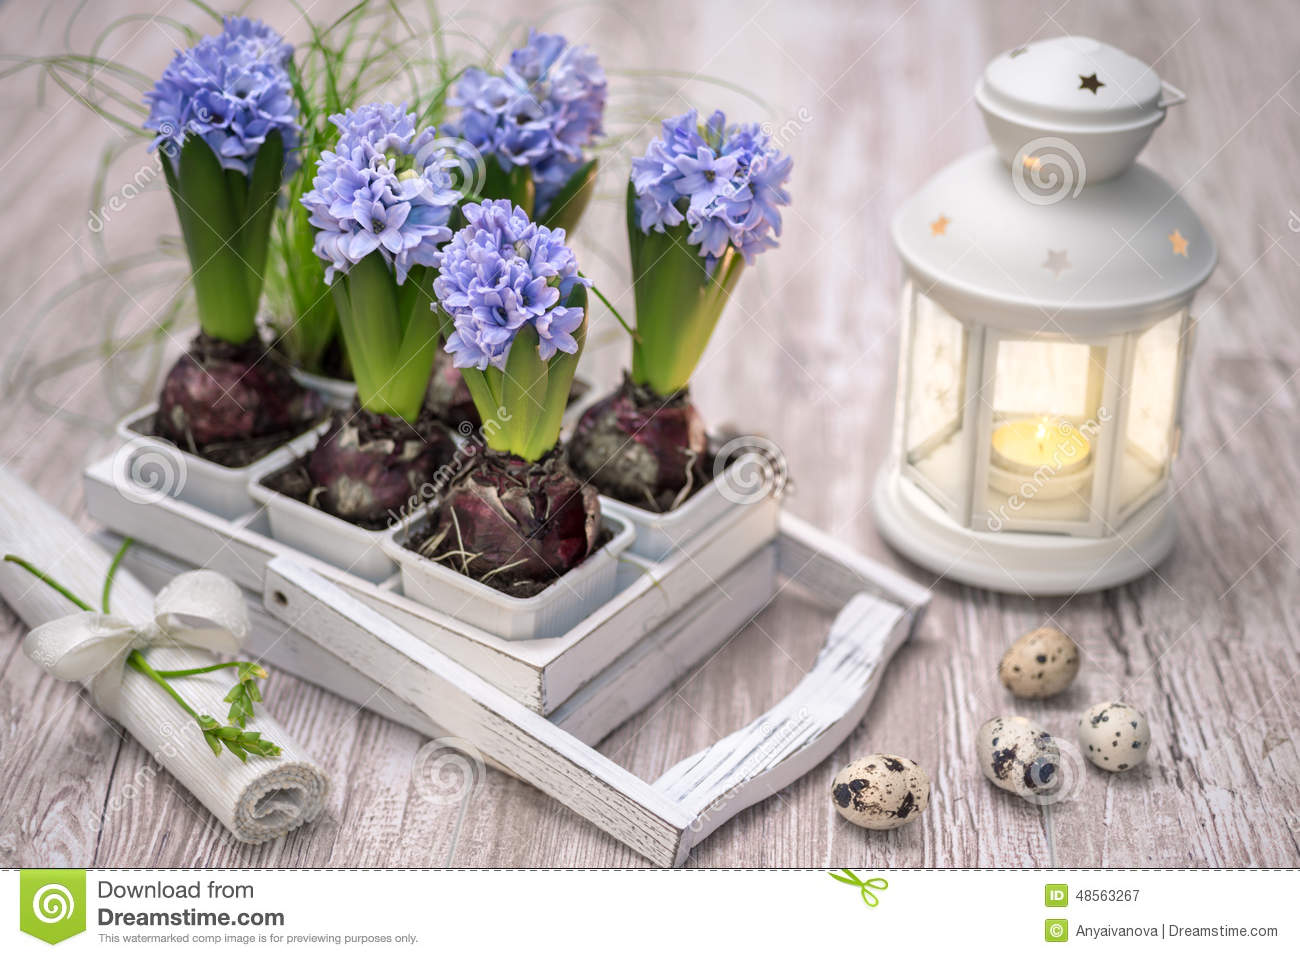 Easter Decorations With Flowers Stock Photo - Image: 87165864